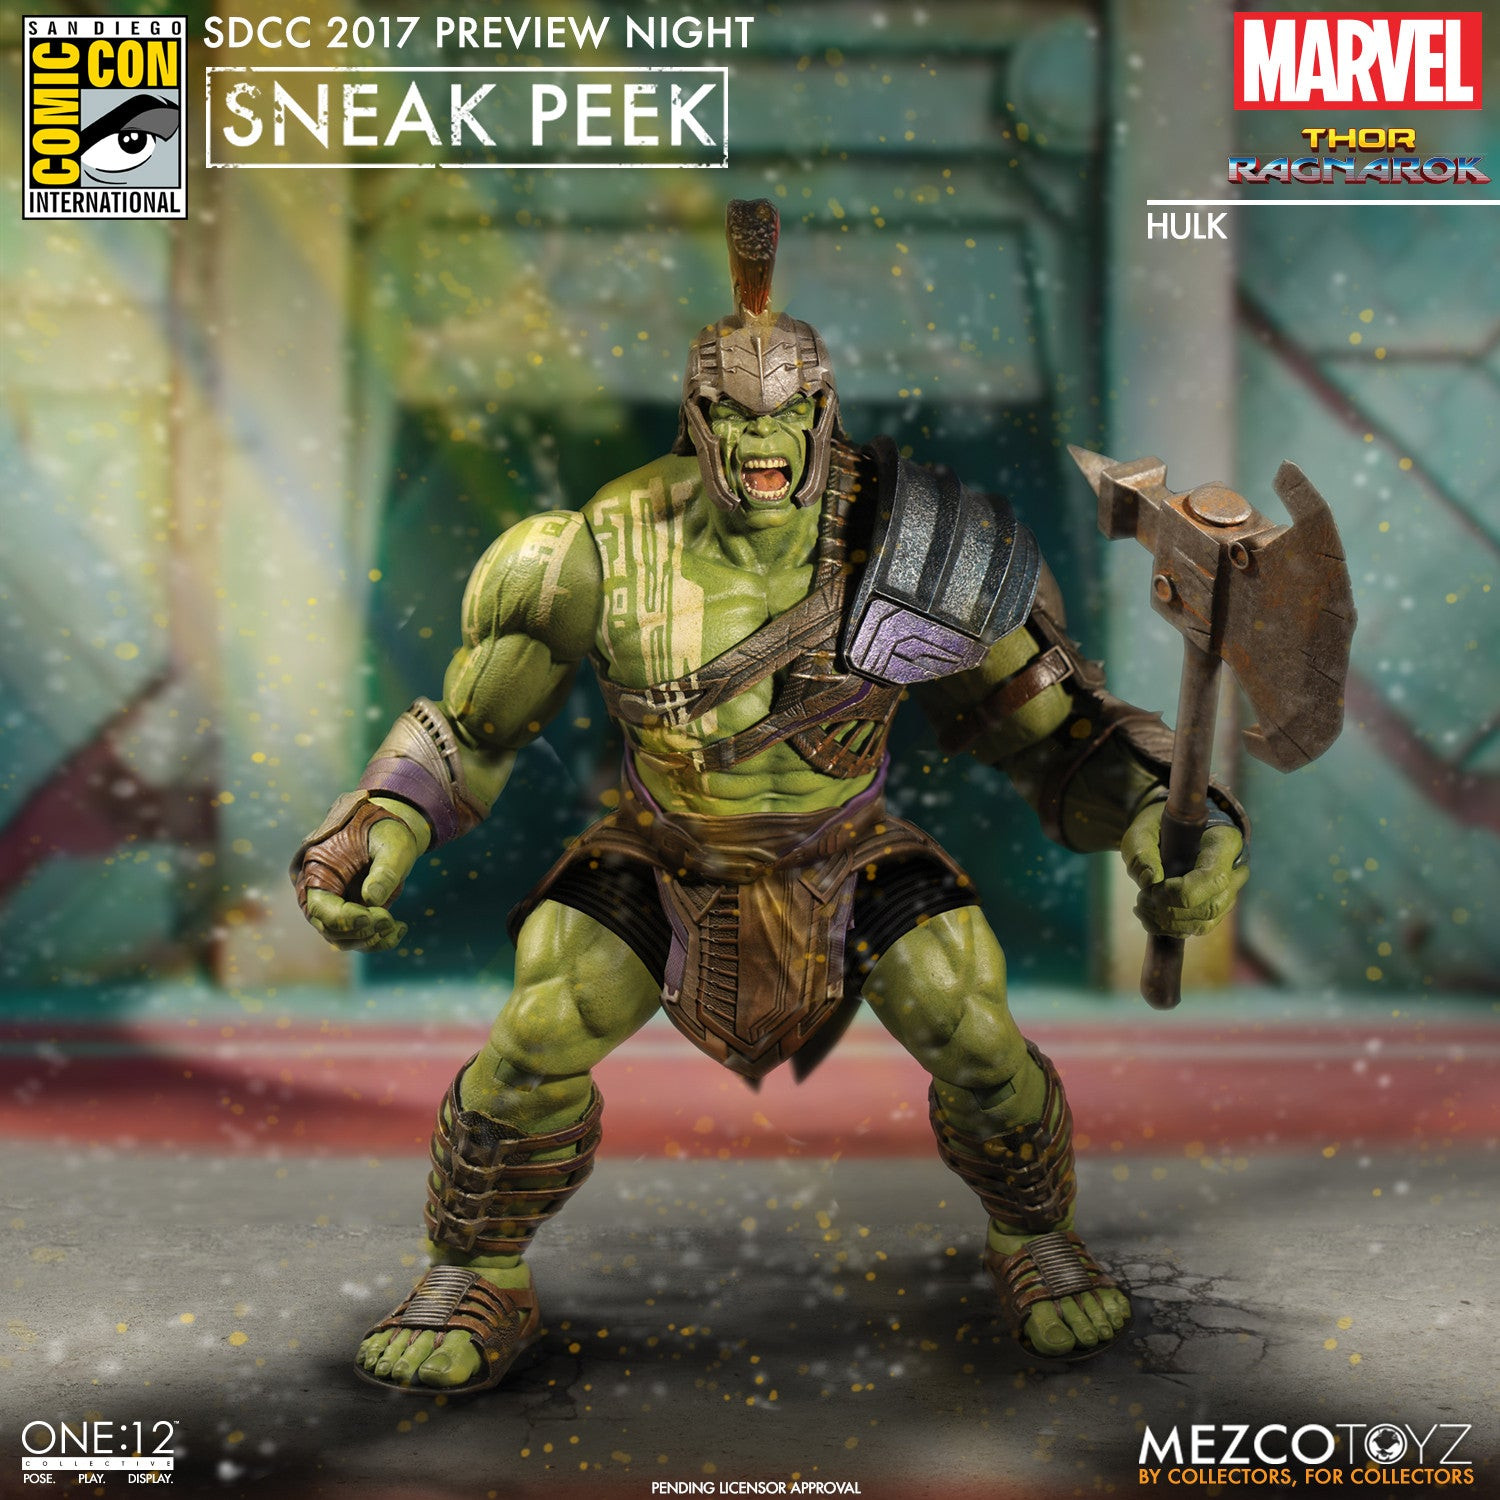 SDCC 2017 Preview Night: Mezco Toyz One:12 Collective - Catwoman, Batman Beyond, Thor Ragnarok, and Hulk!